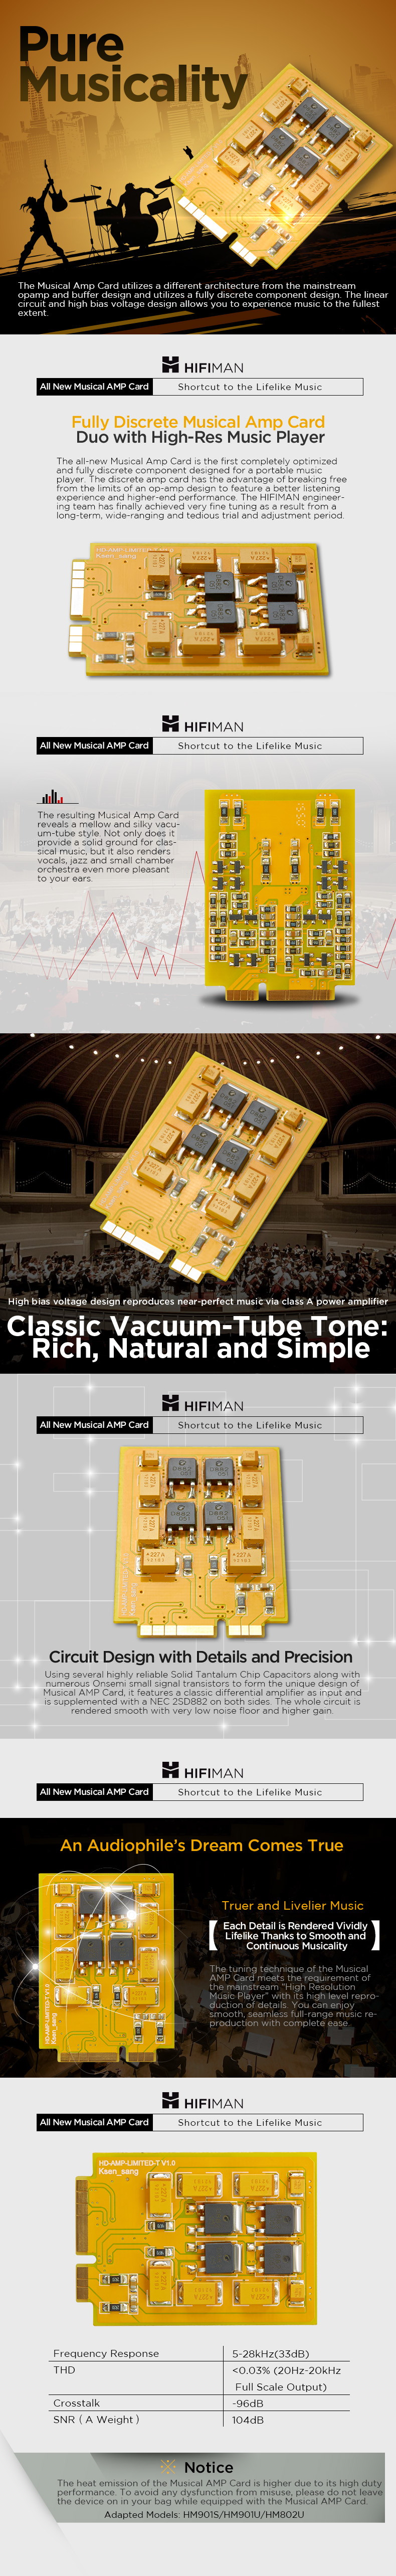 HIFIMAN Musical Amplifier Card for HM901U/802U/901s/650/901/802